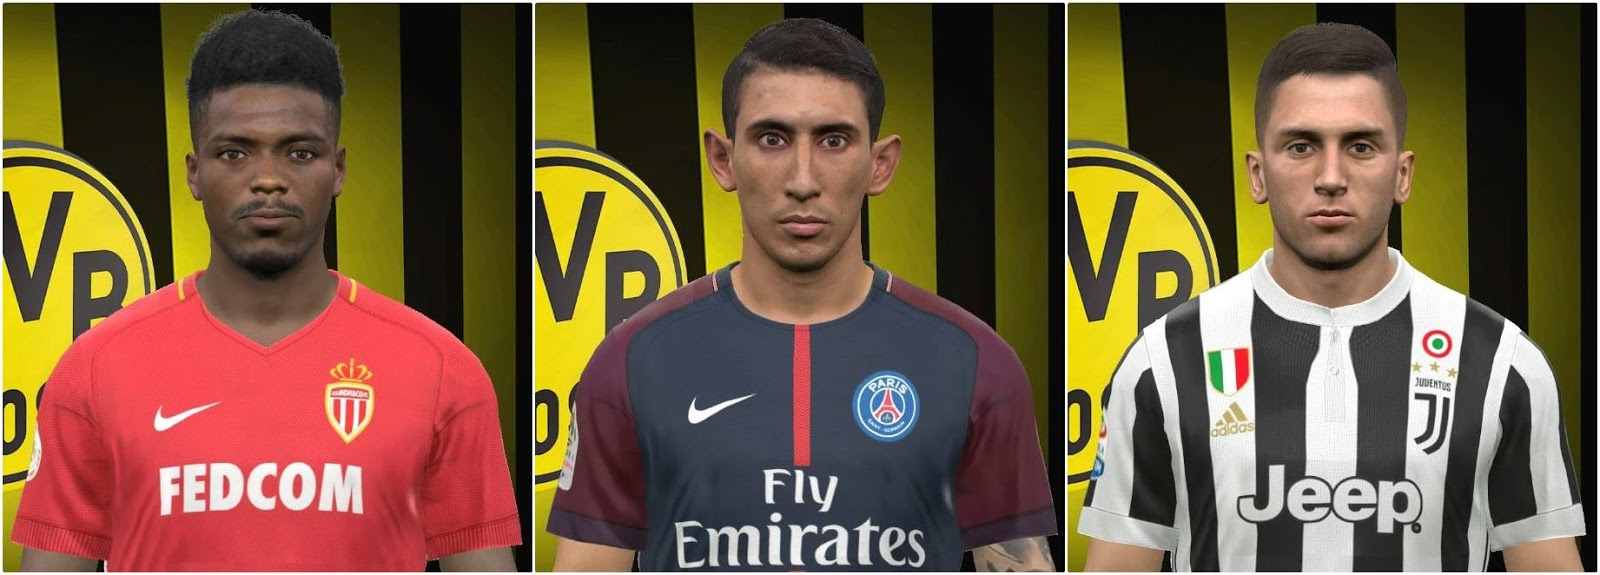 PES 2017 Jemerson, Di Maria and Bentancur face by FaceEditor Jefferson_SF